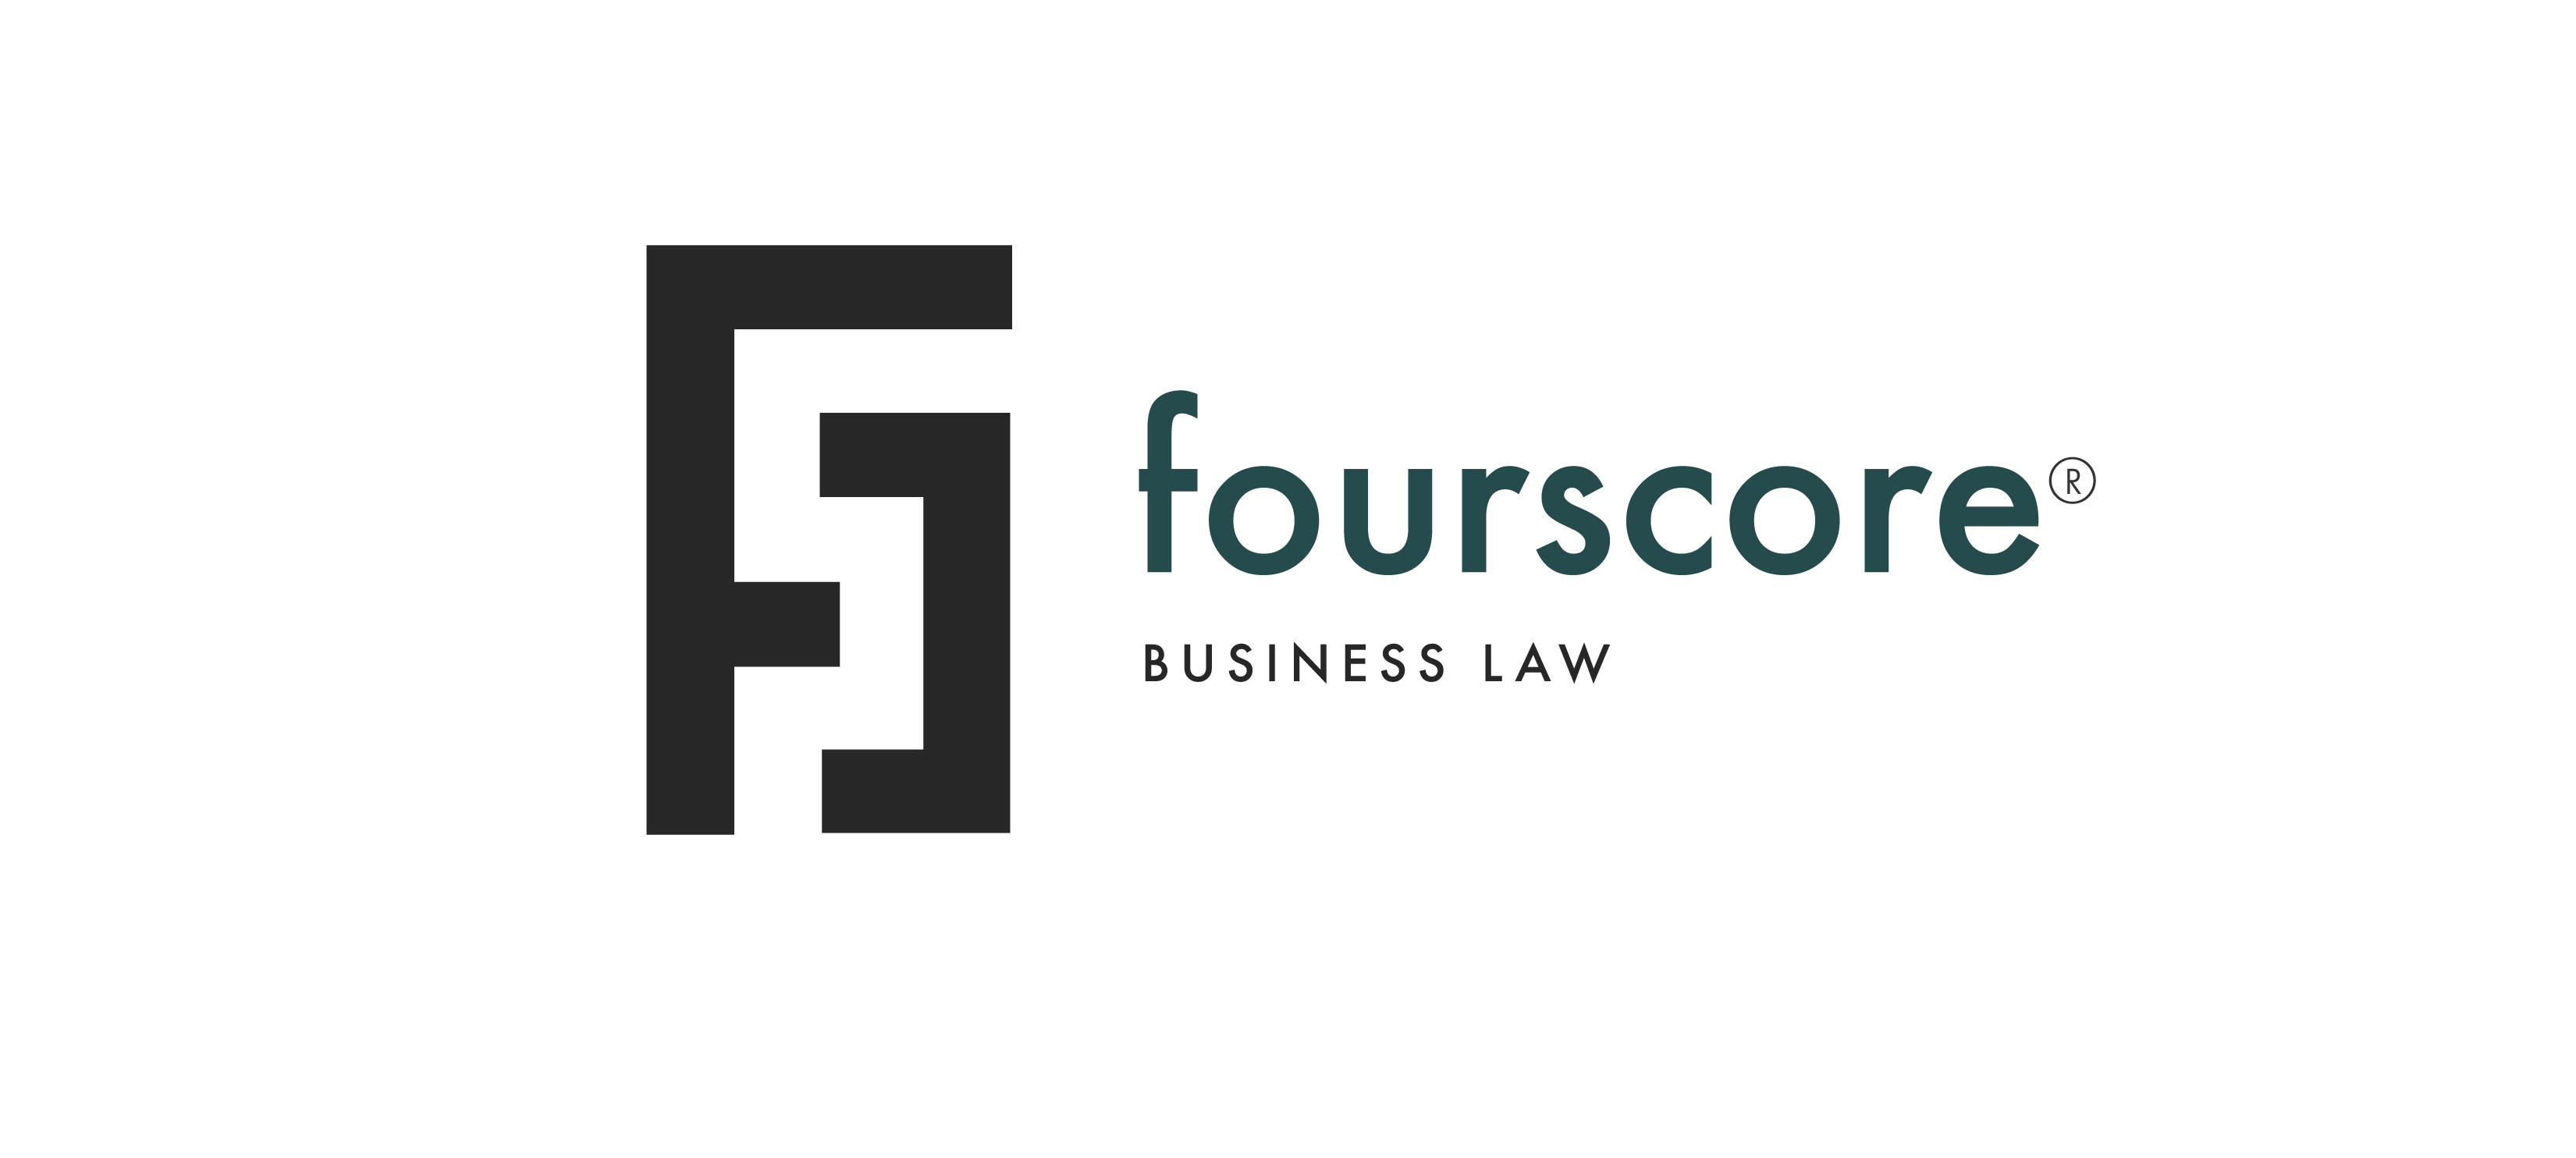 Business Law Attorneys - Fourscore Business Law